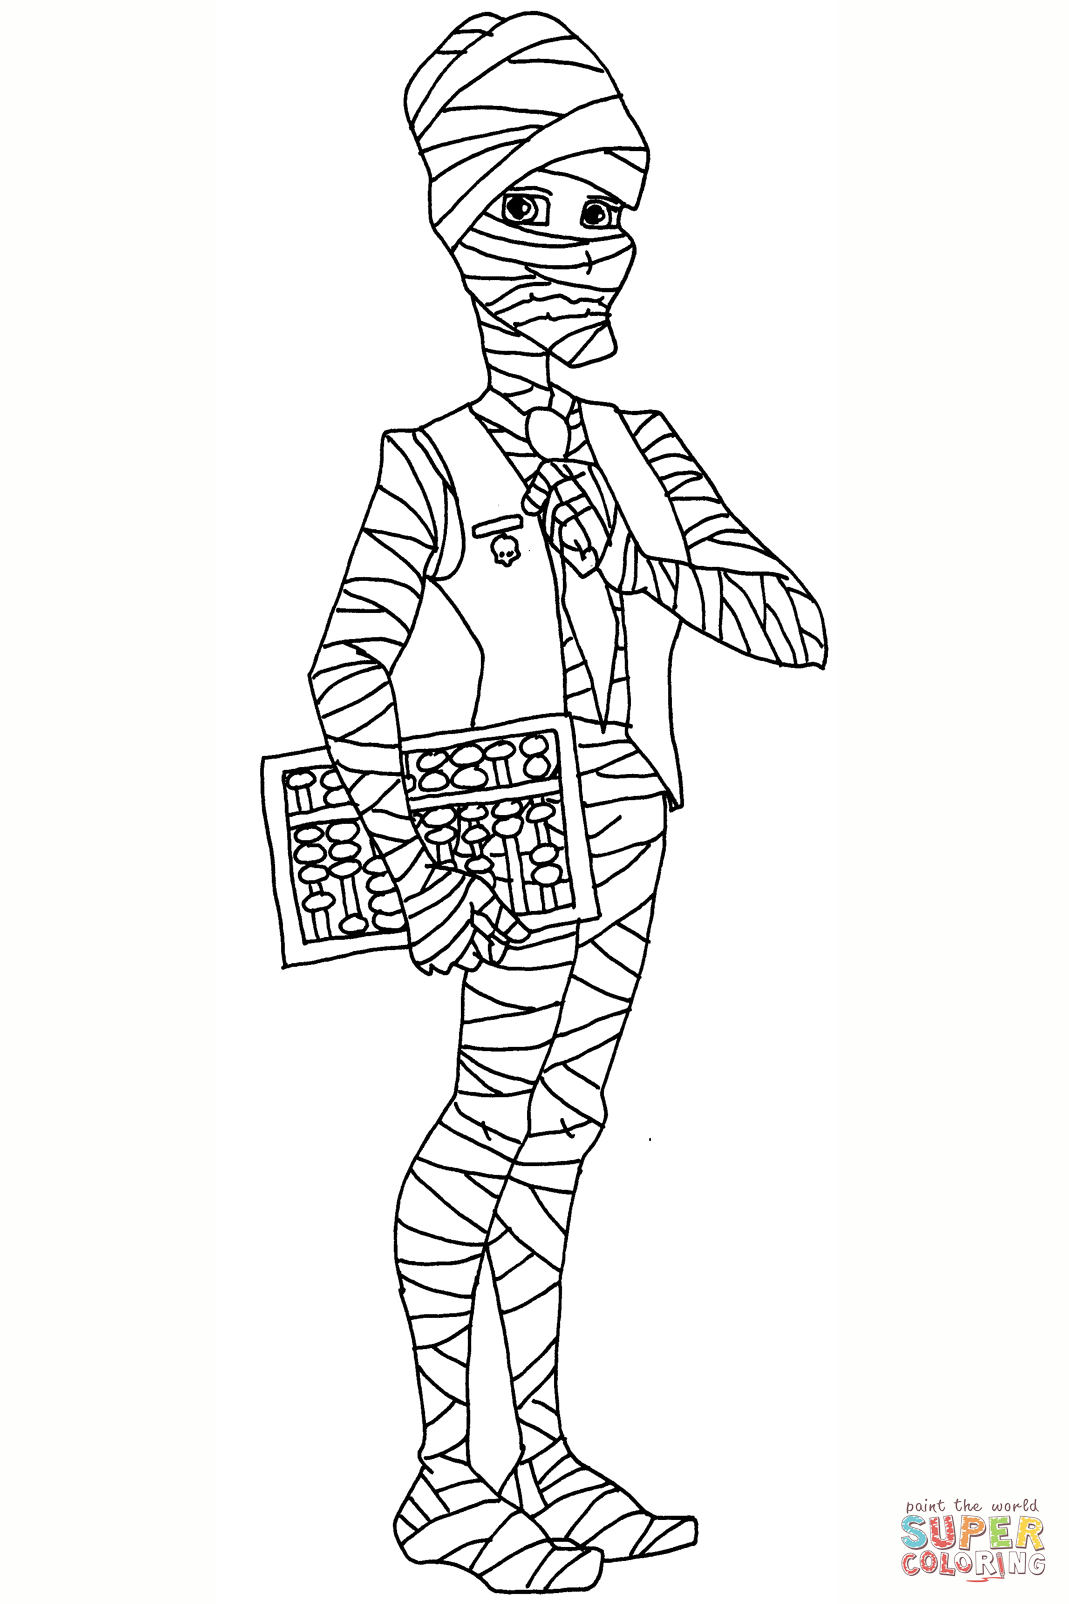 Mr Mummy Coloring Page to Print Free Coloring Sheets